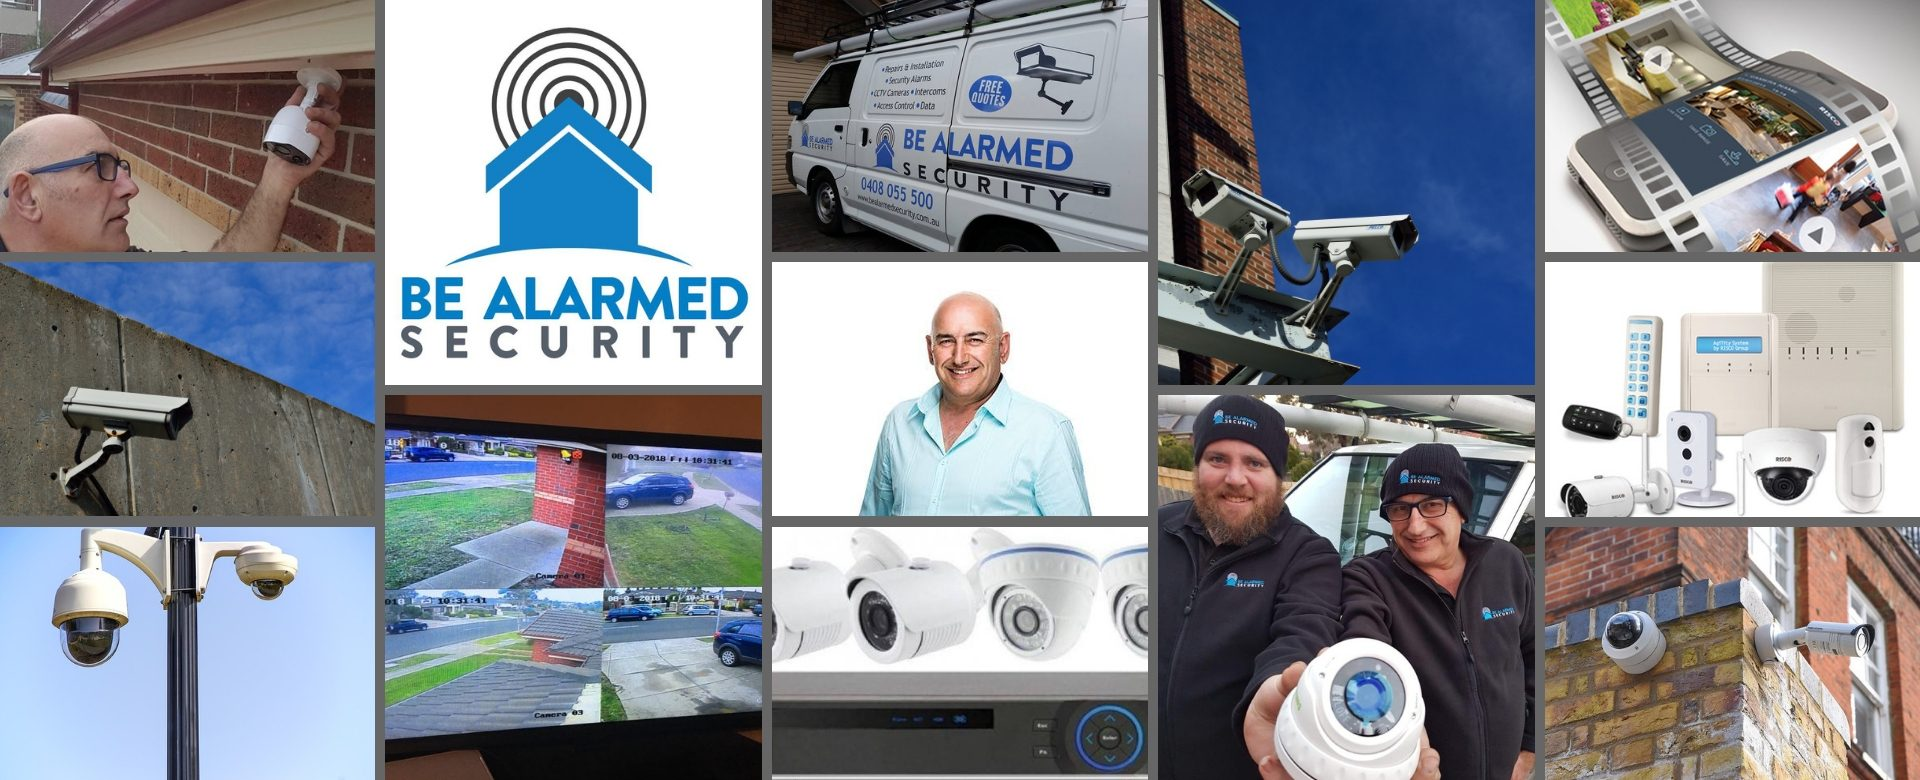 Be Alarmed Security Melbourne